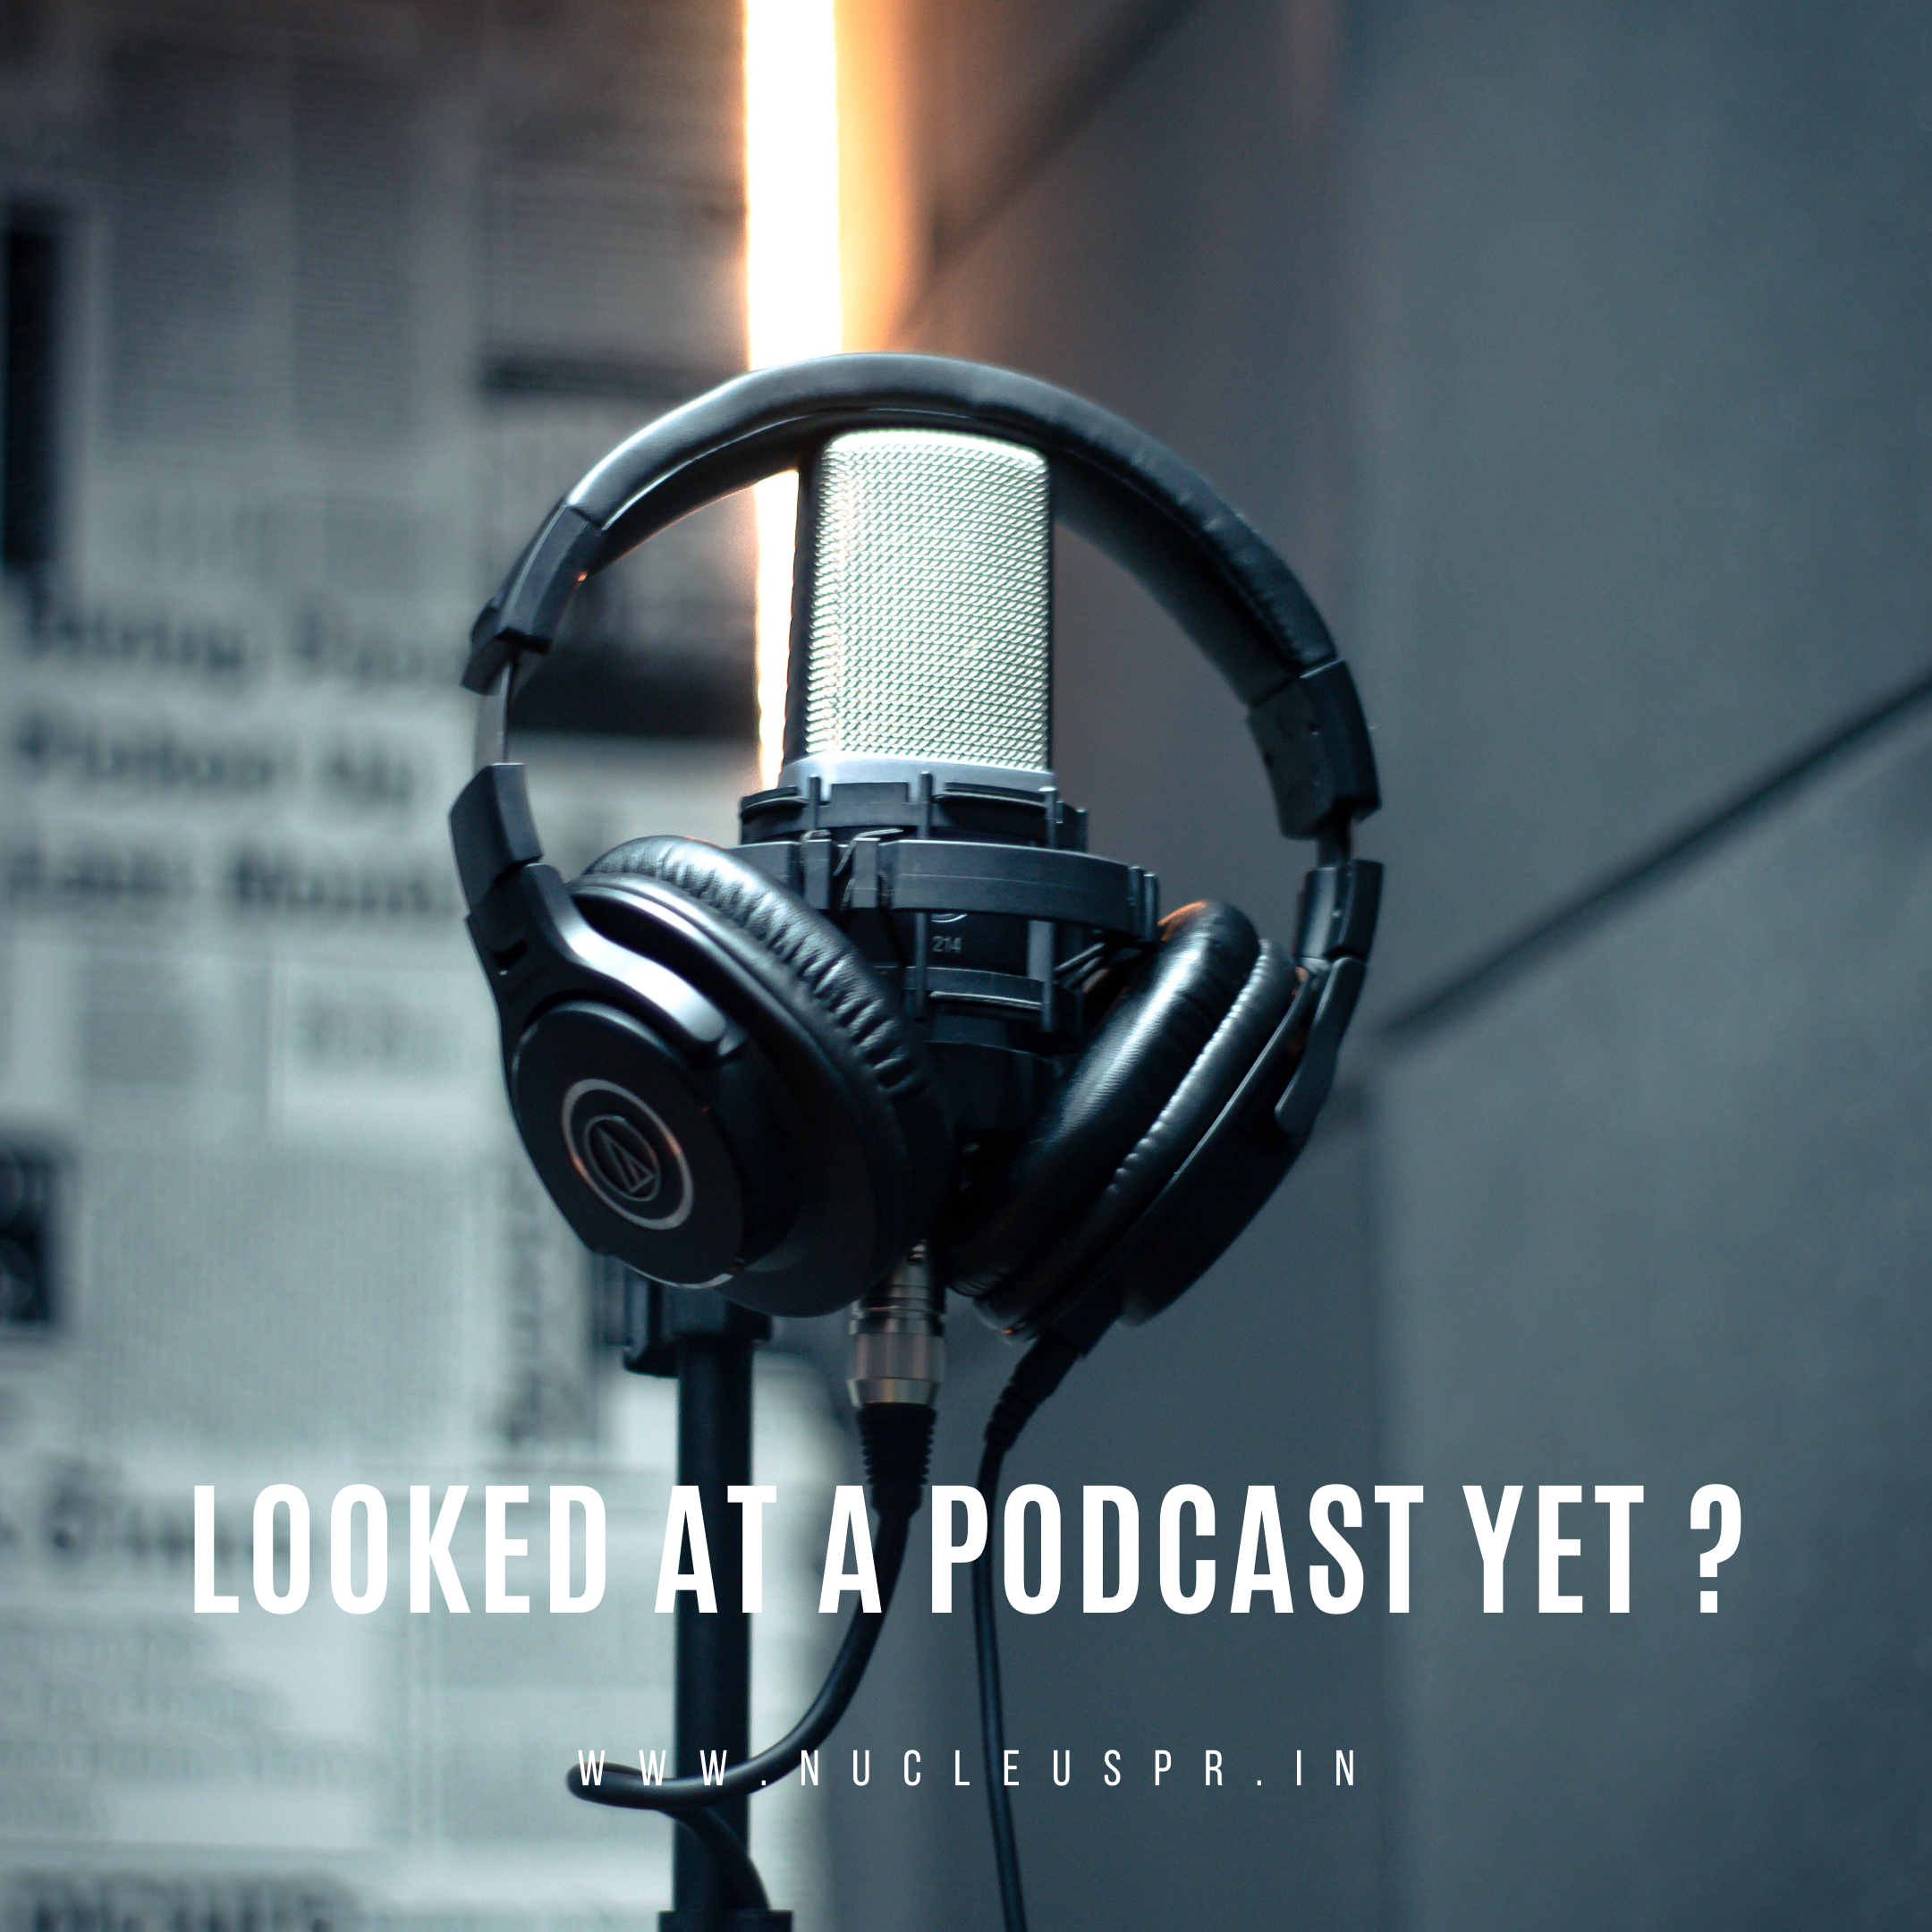 3 reasons to include podcasts in your PR Plan